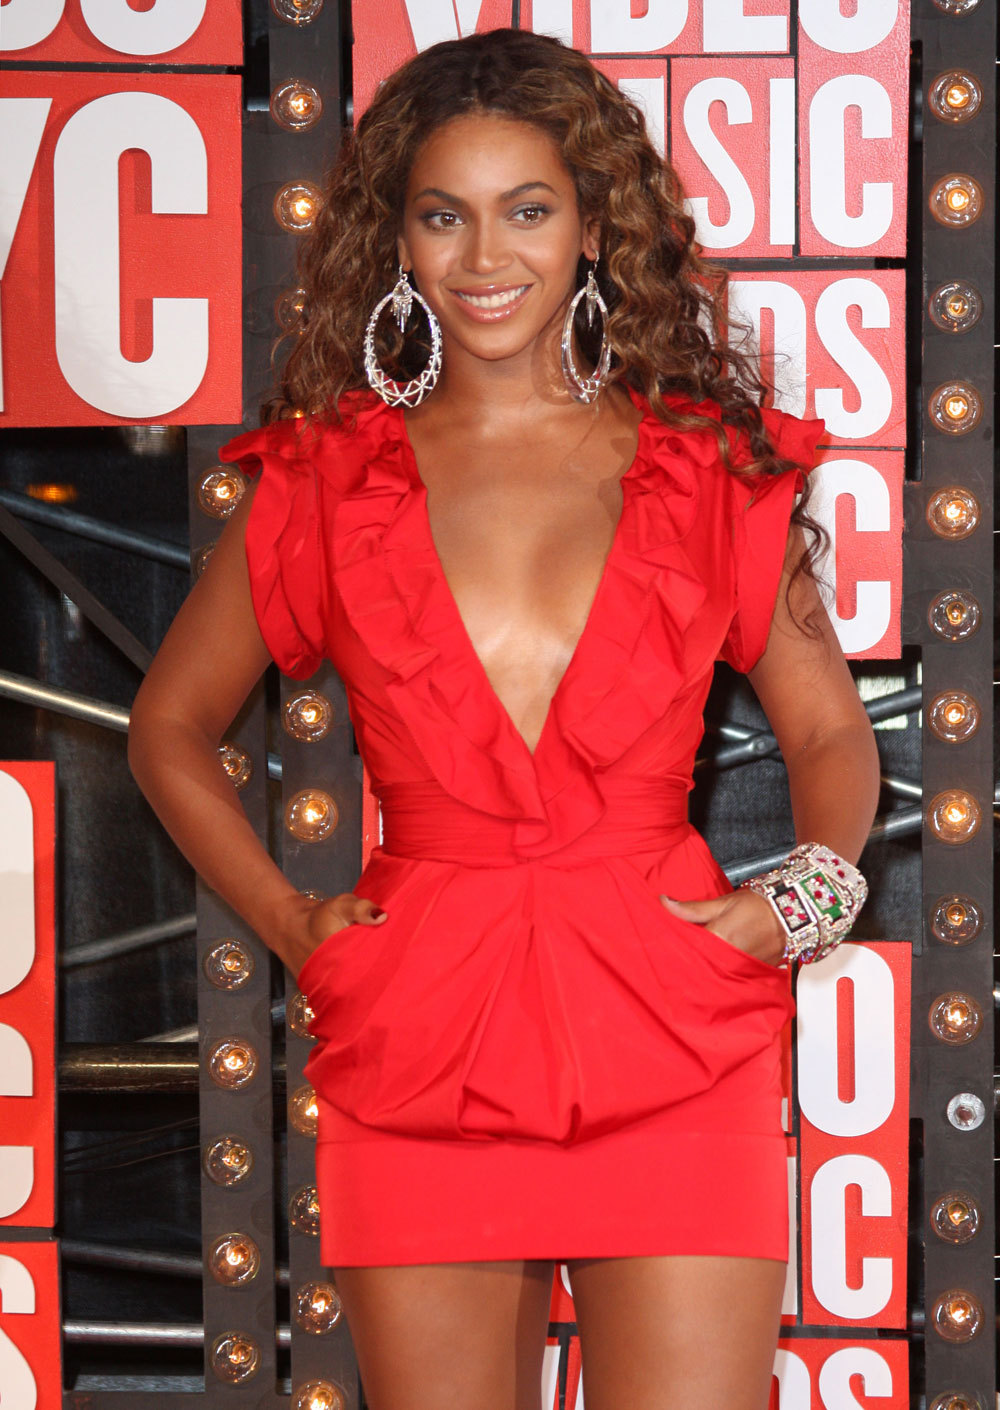 Beyonce In Red Dress - Colorful Dress Images of Archive